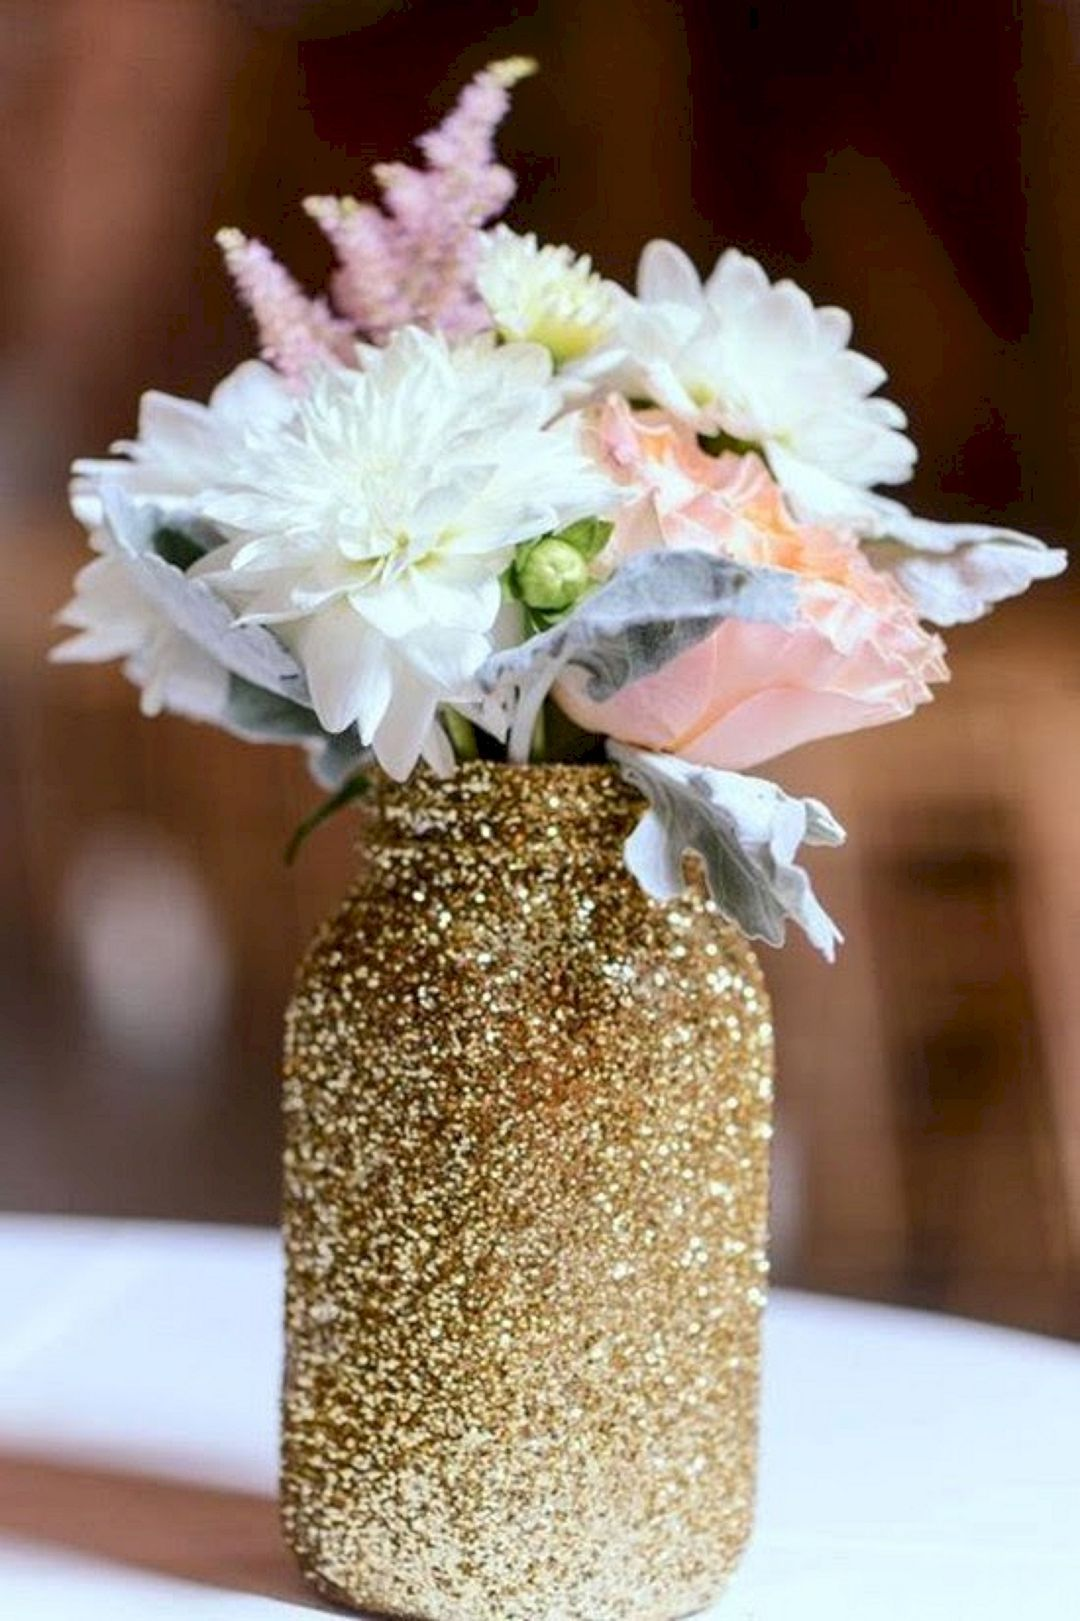 29 diy creative rustic chic wedding centerpieces ideas chic 29 diy creative rustic chic wedding centerpieces ideas junglespirit Image collections